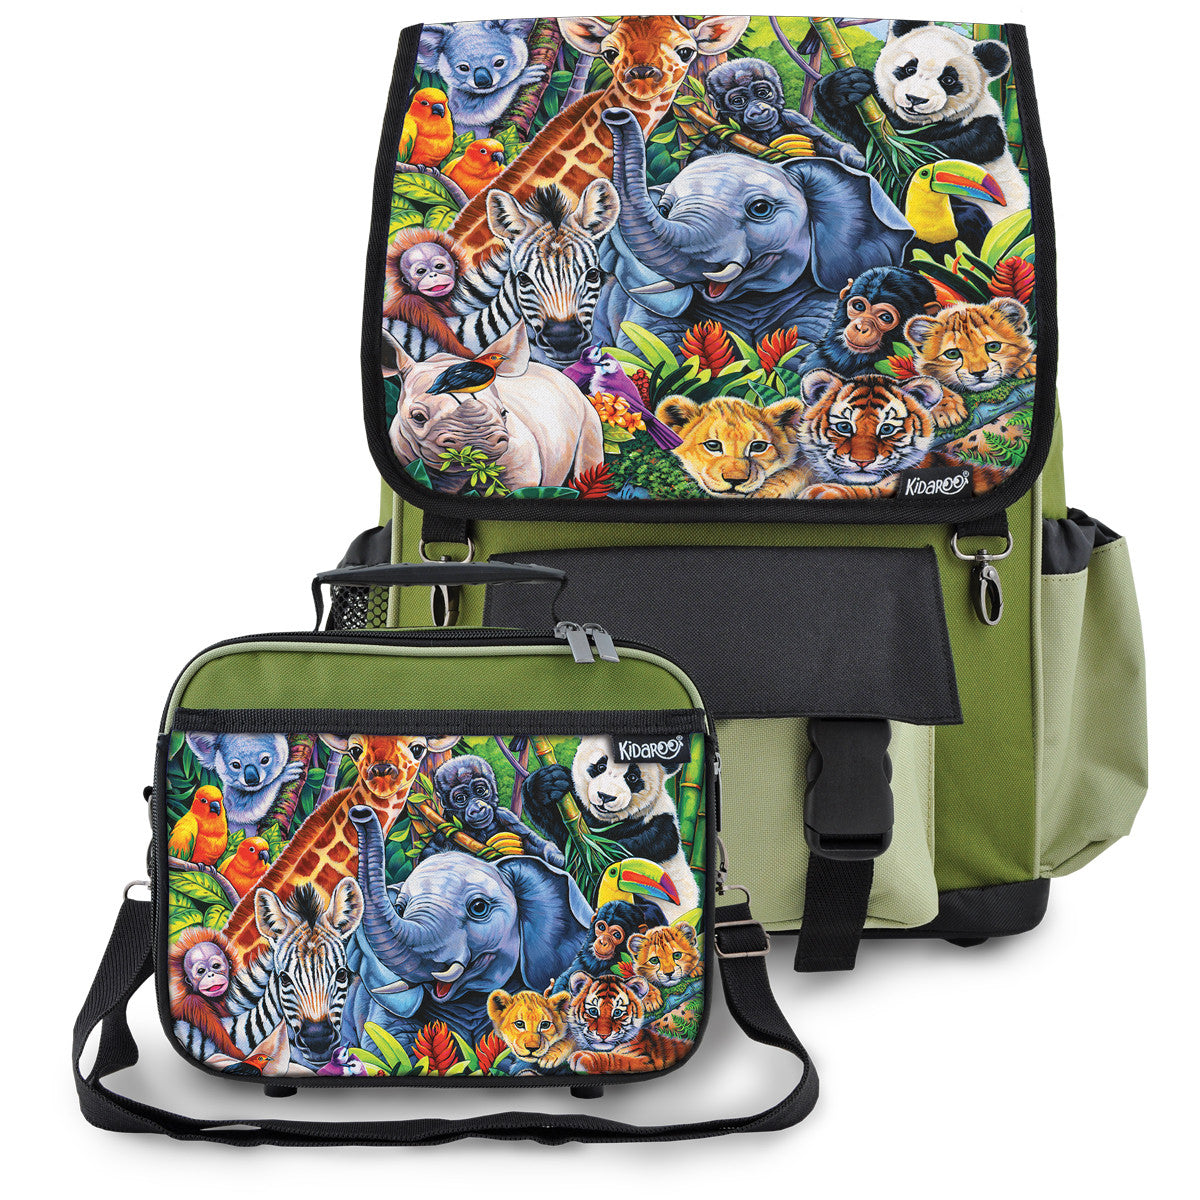 Kidaroo Khaki Green Jungle Babies School Backpack & Lunchbox Set for Boys, Girls, Kids